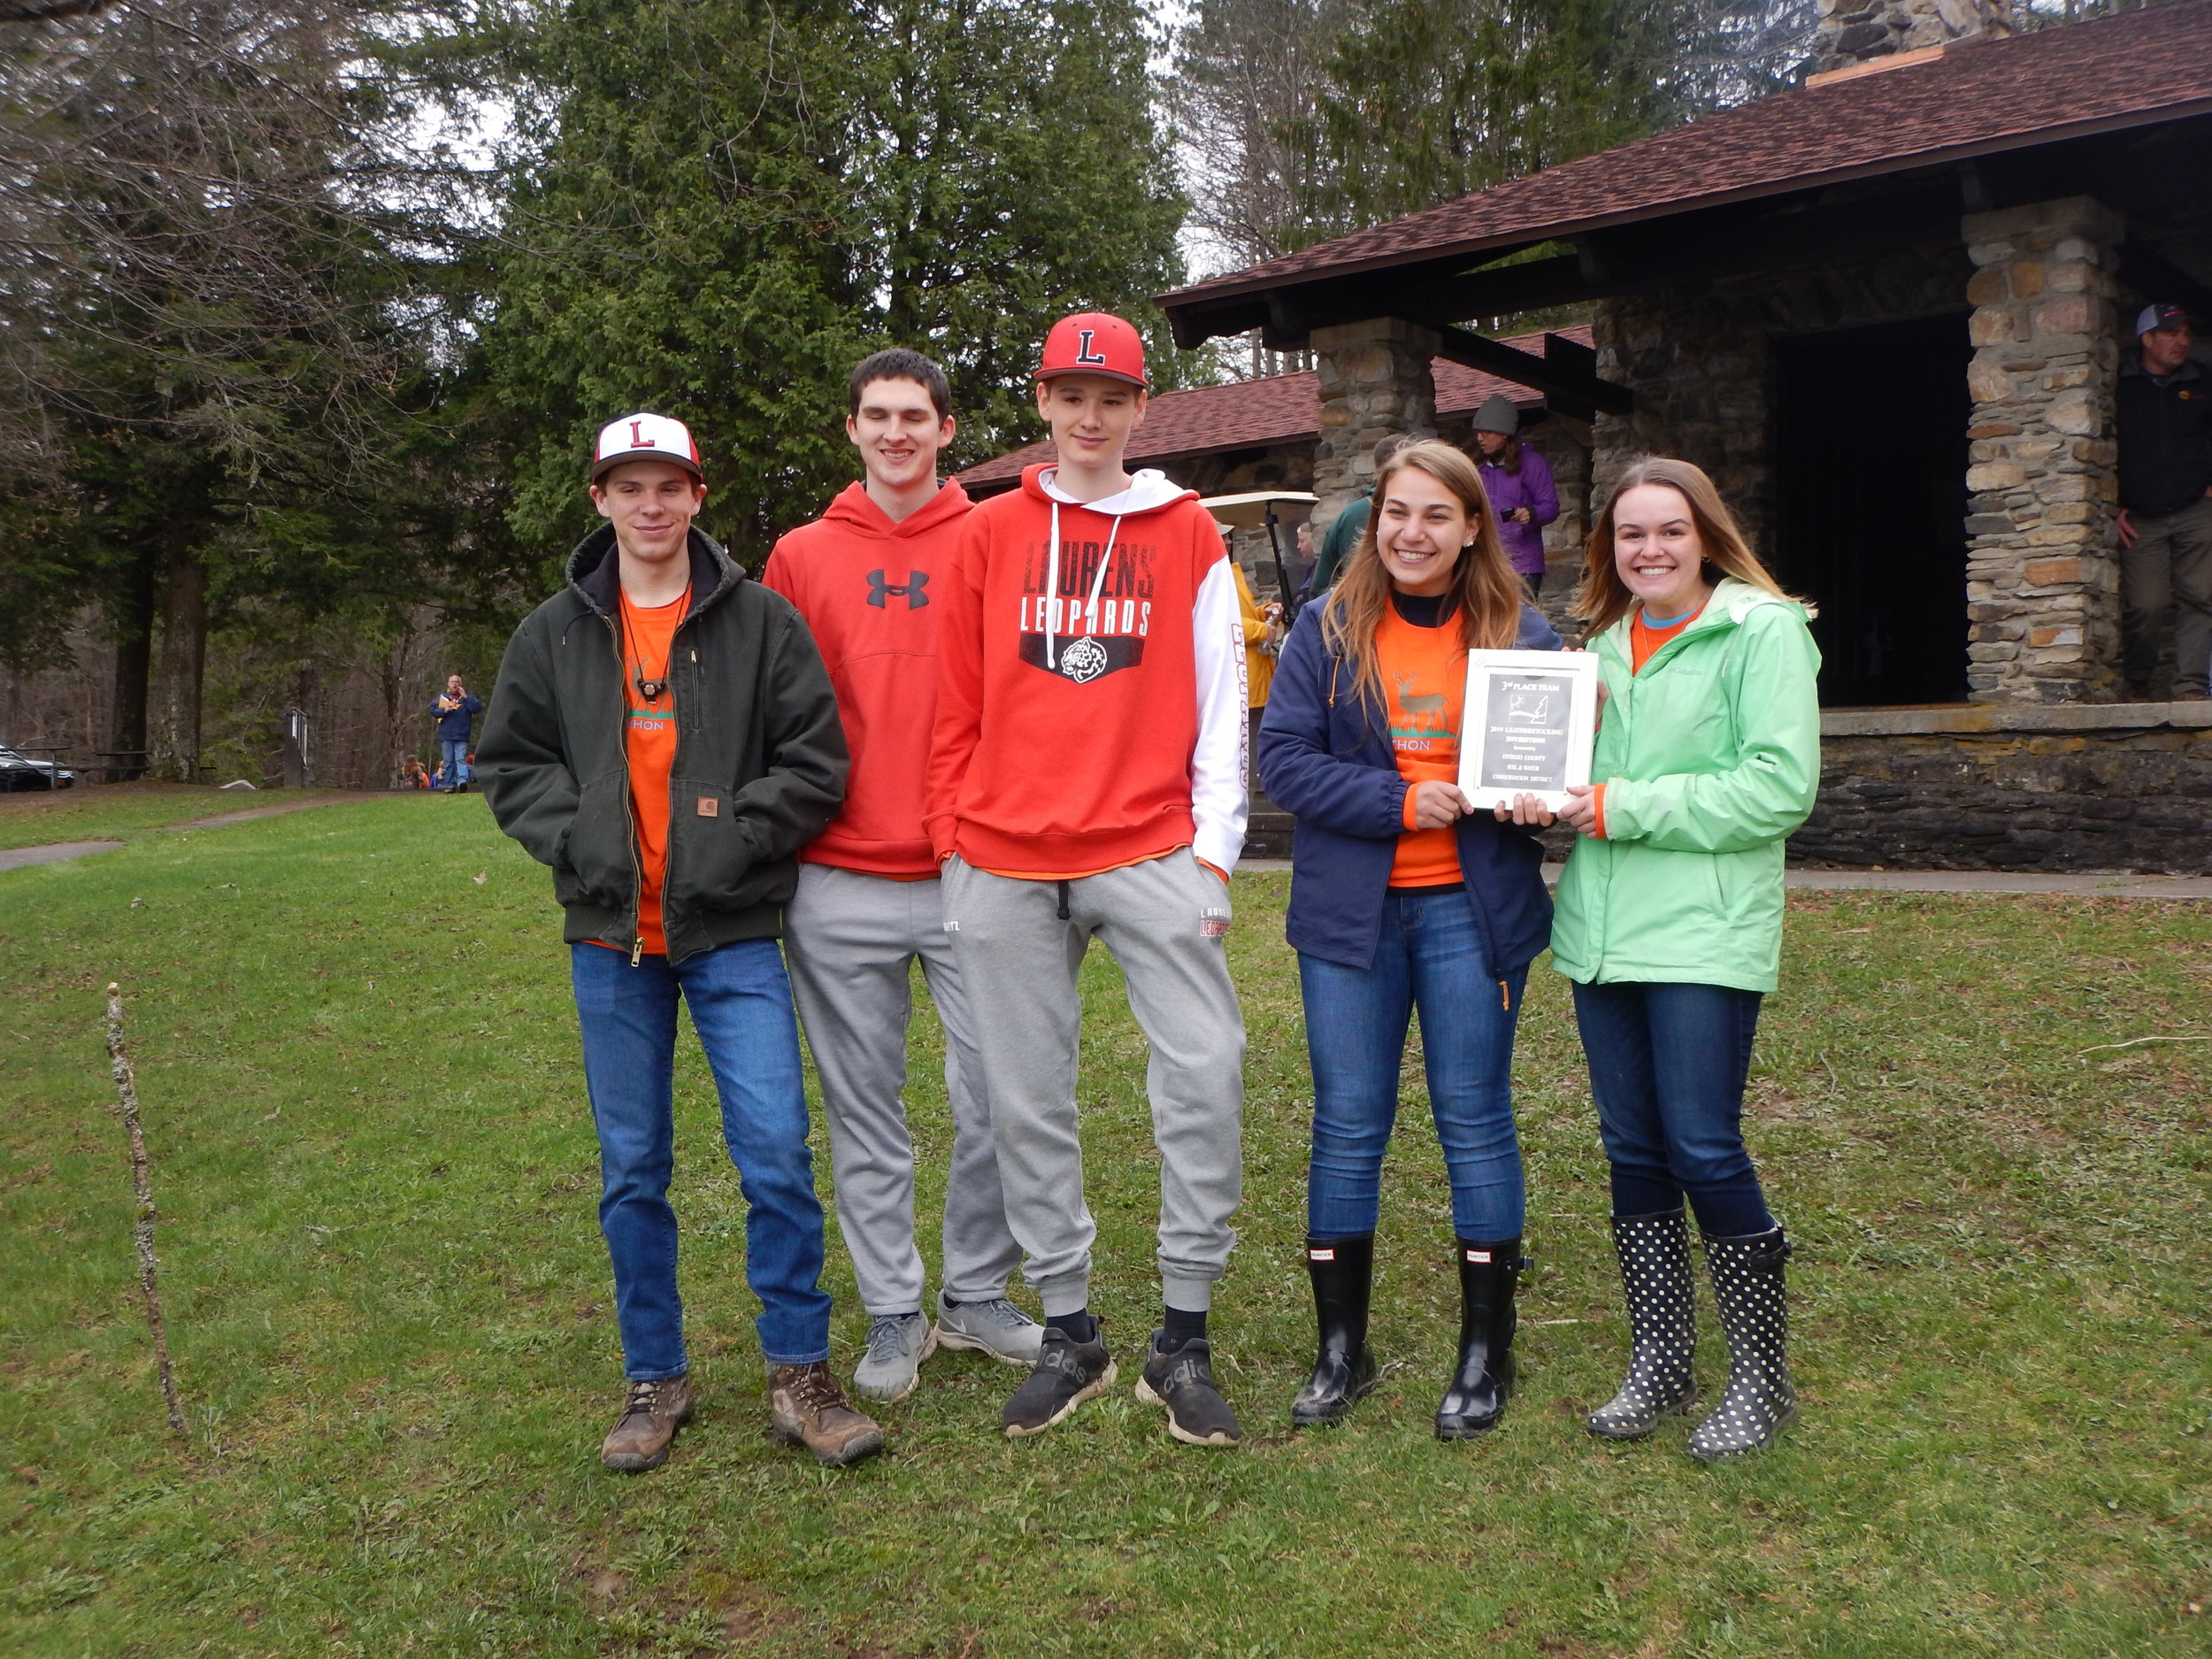 """ Laurens - Team A "" - 2019 Leatherstocking Envirothon 3rd Place Team"